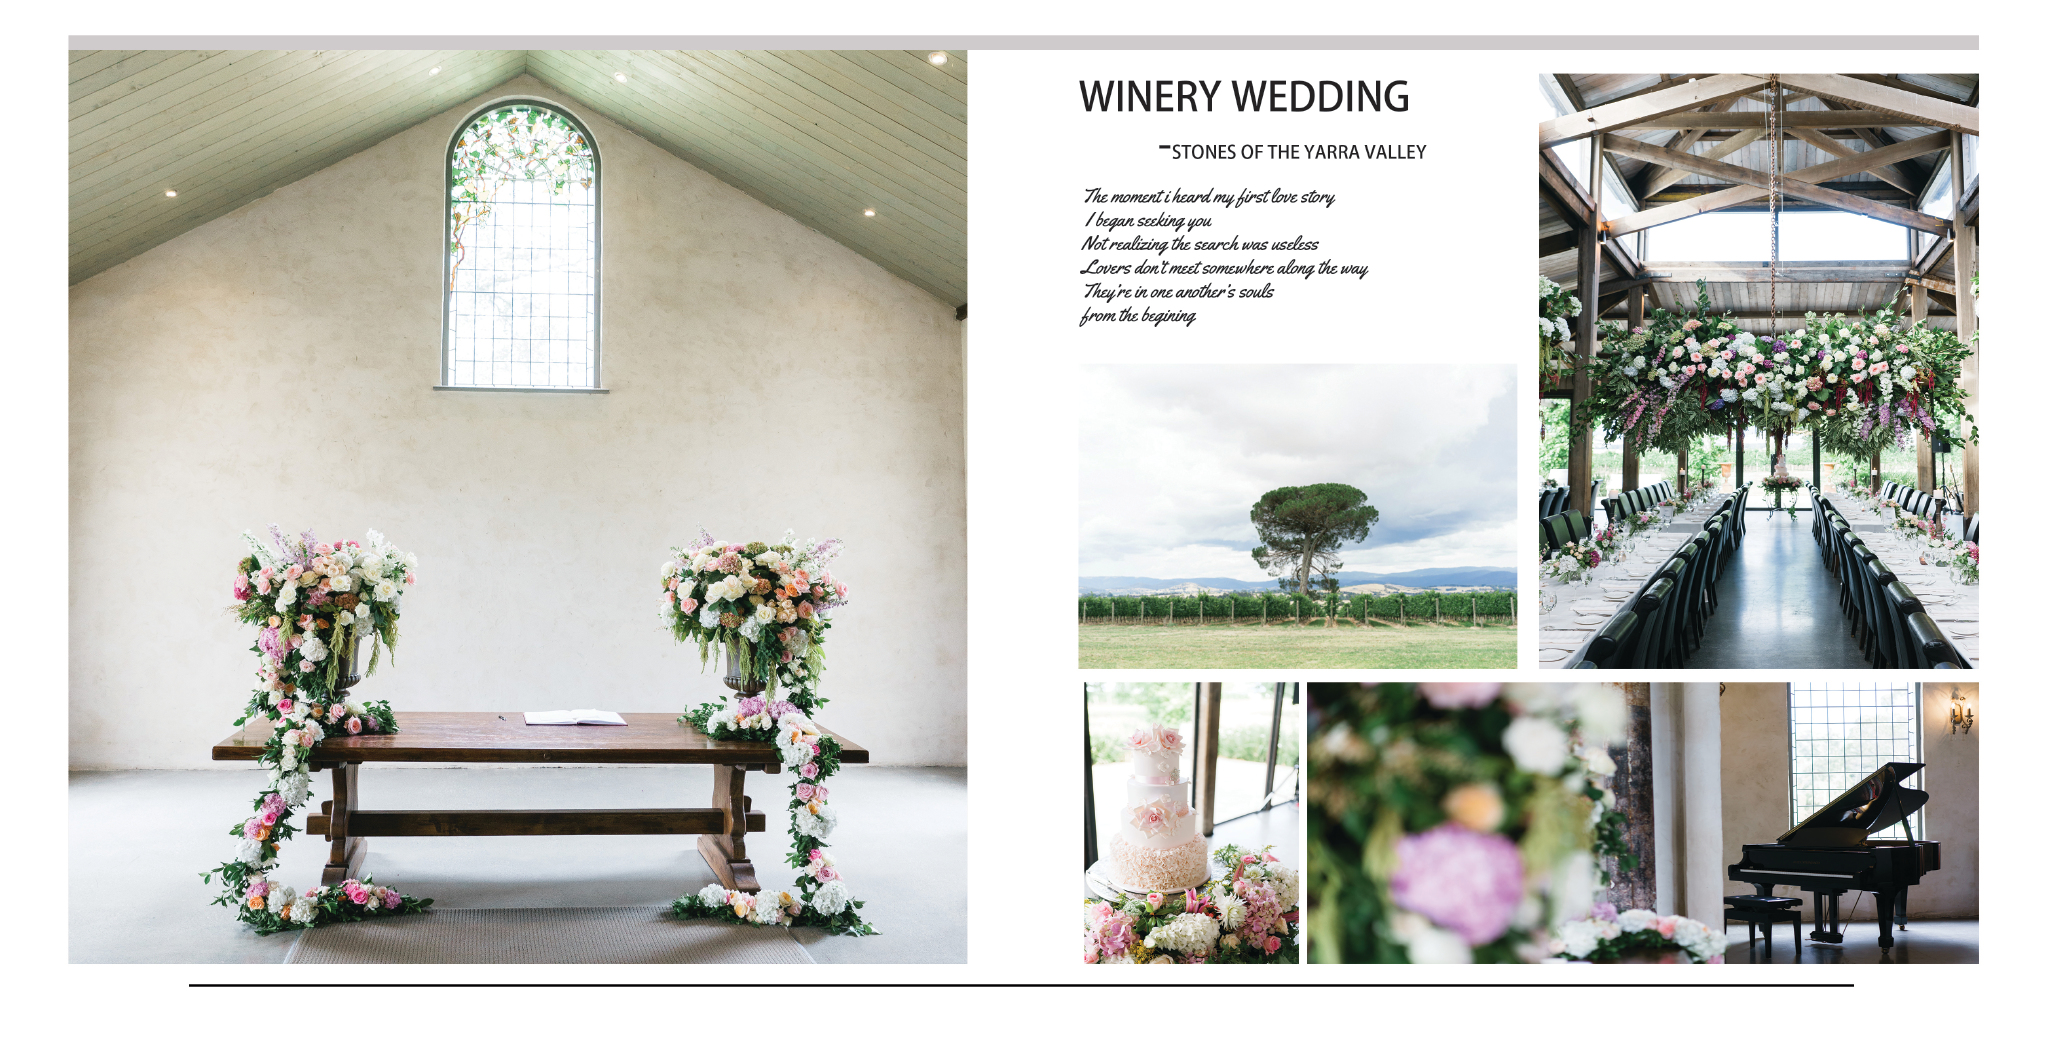 wedding planning Melbourne wedding theme idea winery wedding